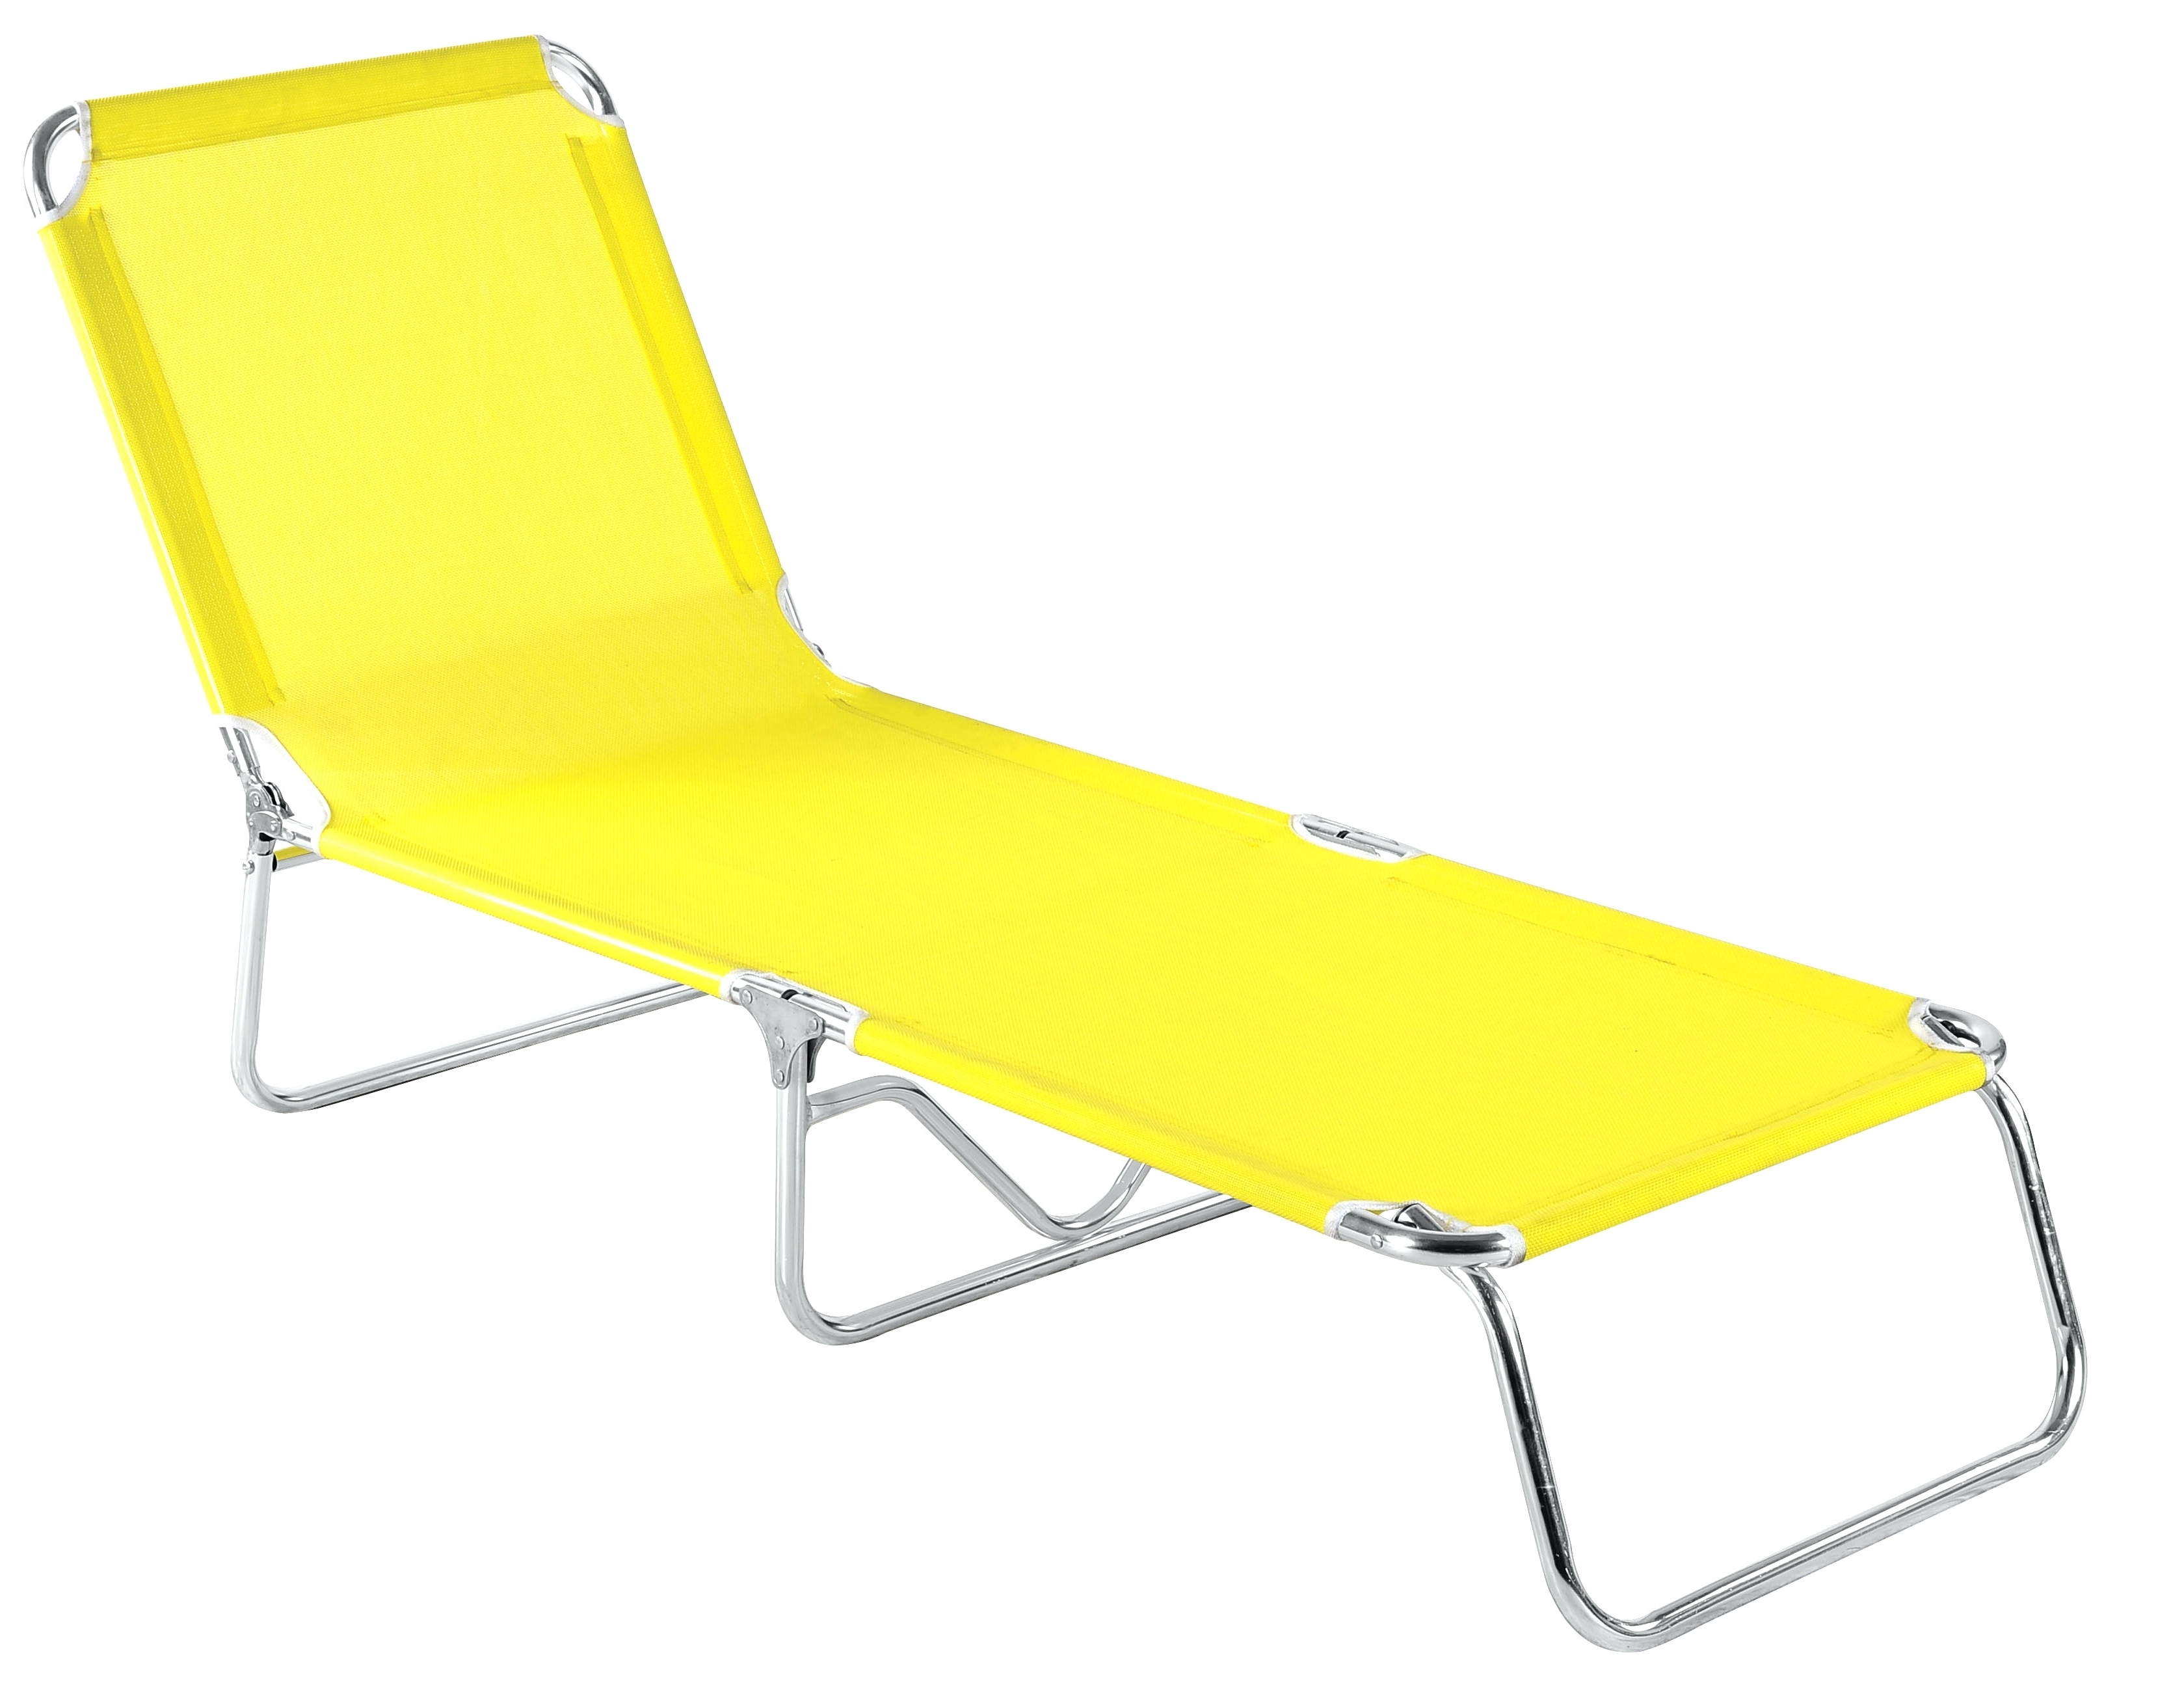 Well Known Heavy Duty Beach Lounge Chair • Lounge Chairs Ideas In Heavy Duty Chaise Lounge Chairs (View 3 of 15)